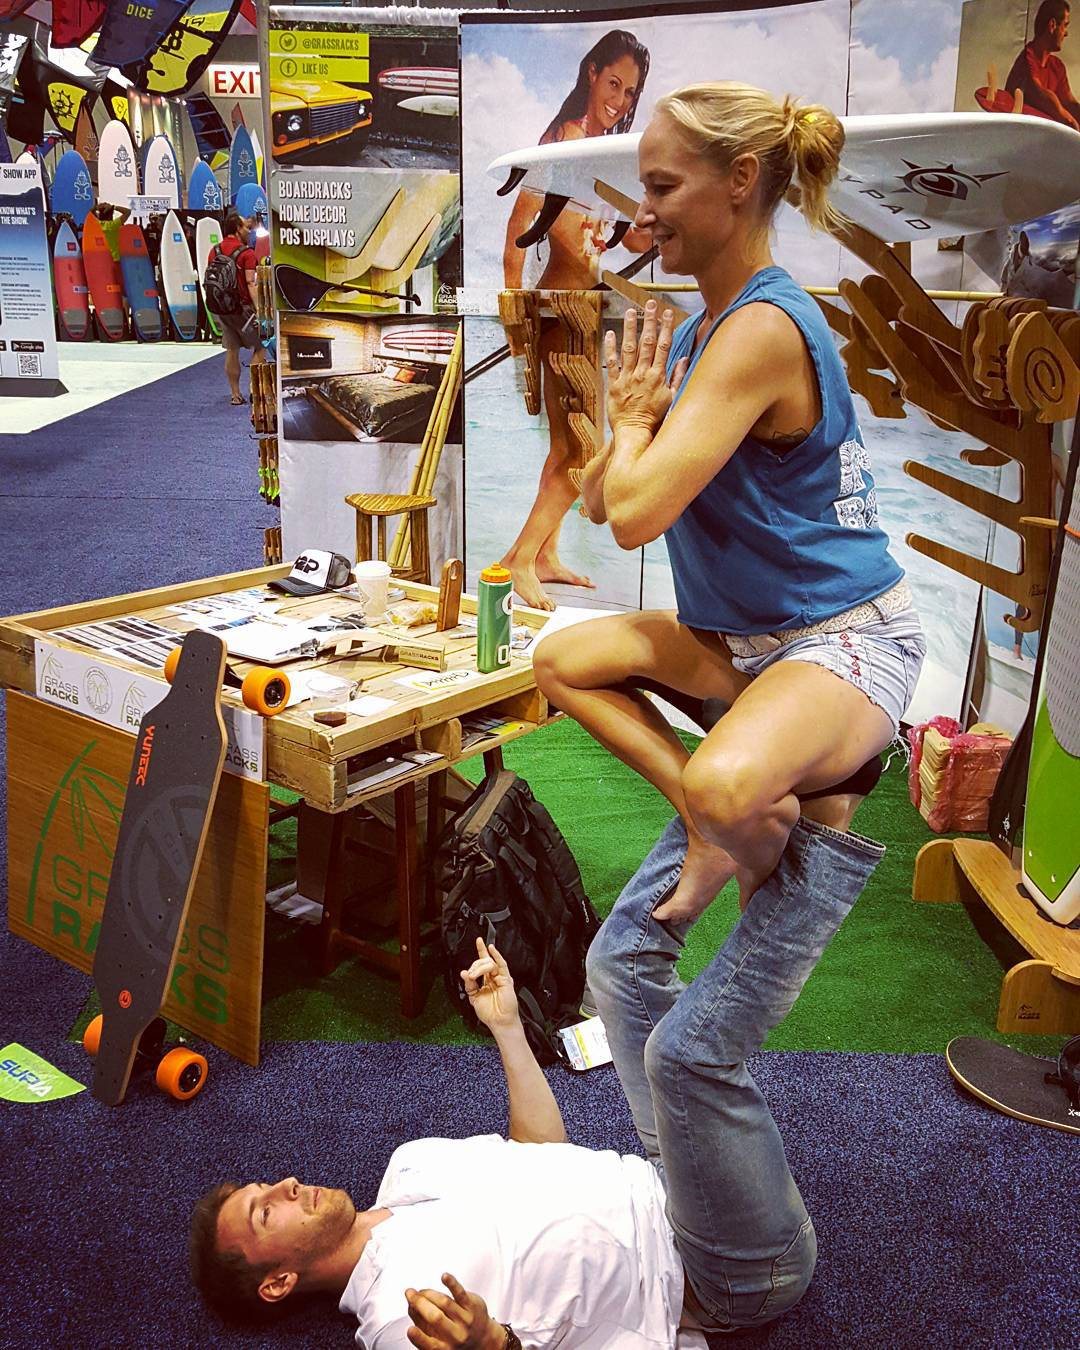 Successfully acro'd with (and didn't drop) @heathertleo!  Last day at expo, many demos to be sold. Come b(u)y and leave happy. BOOTH 868  #surfexpo #SURF #surfer #bamboo #boardracks #boardrack #yoga #acroyoga